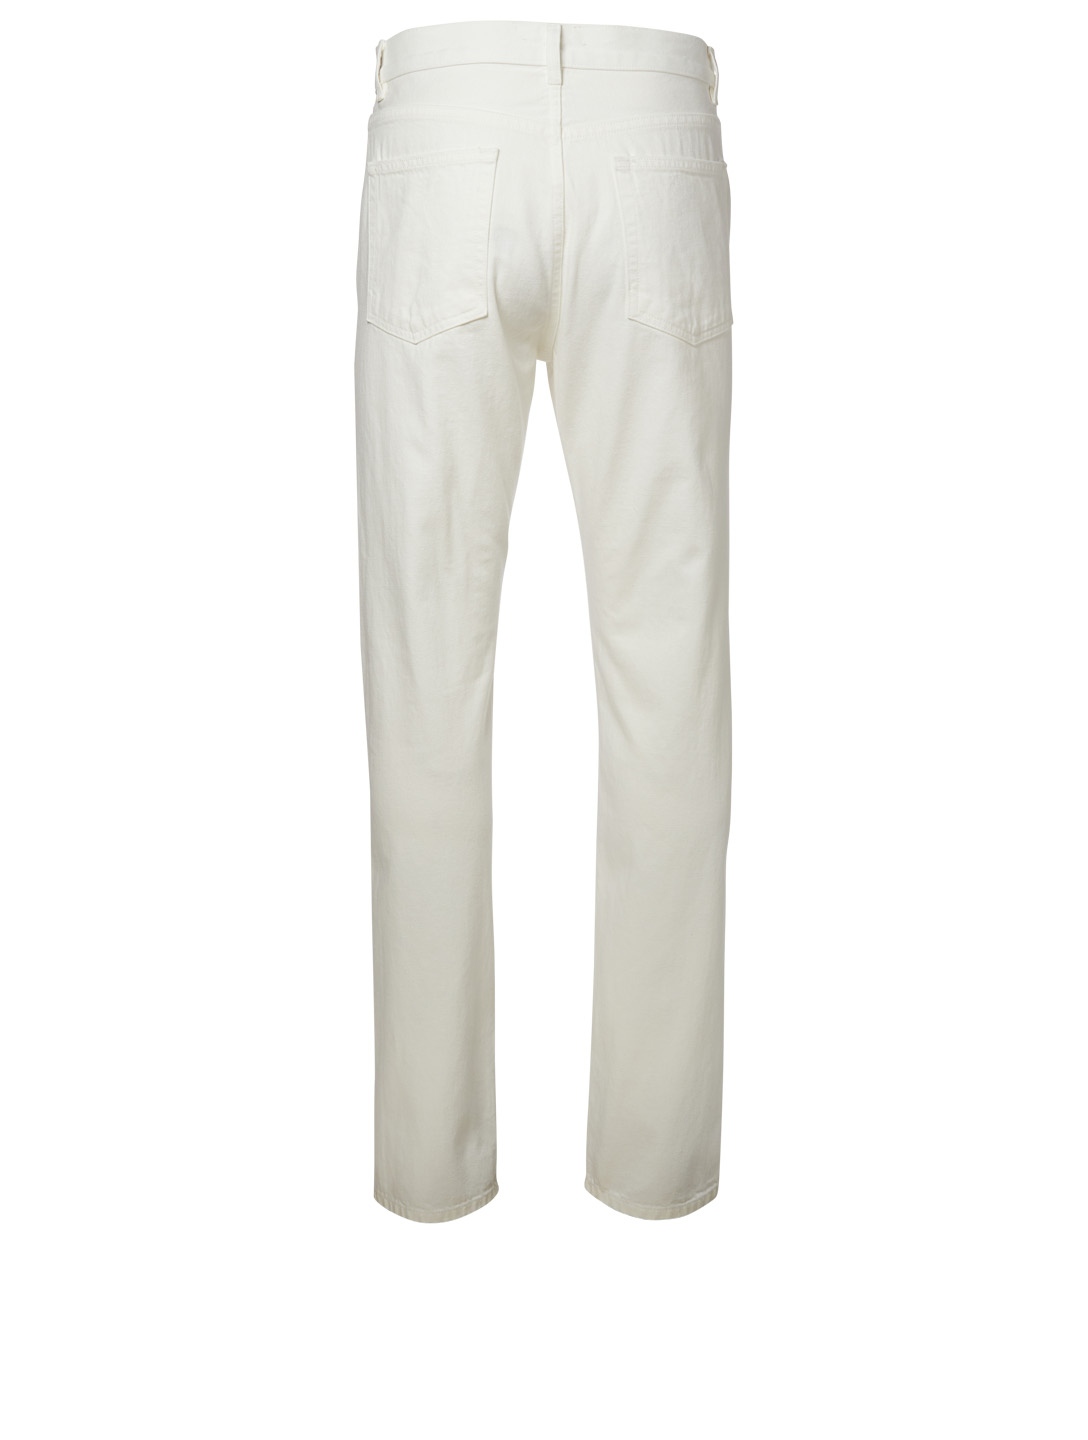 THE ROW Bryan Jeans Men's White